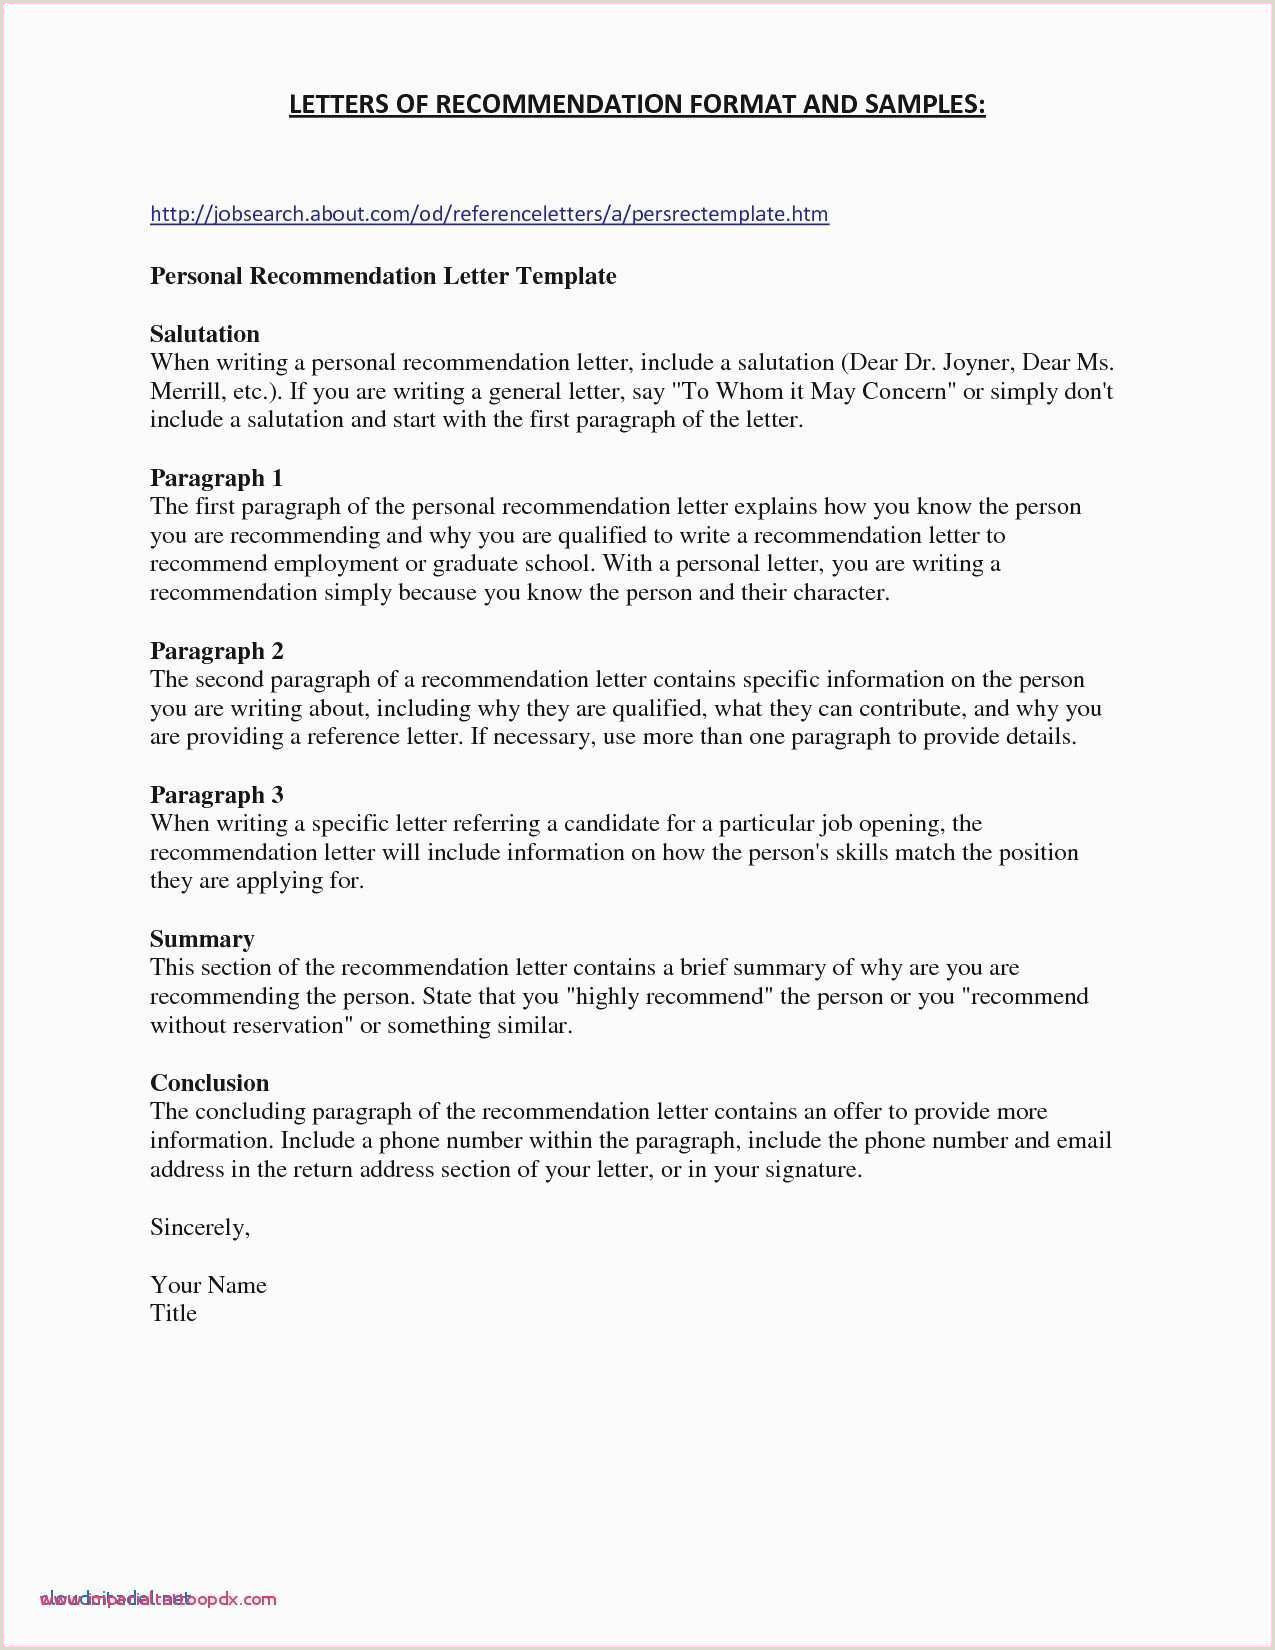 Sample Resume for Teachers without Experience Awesome